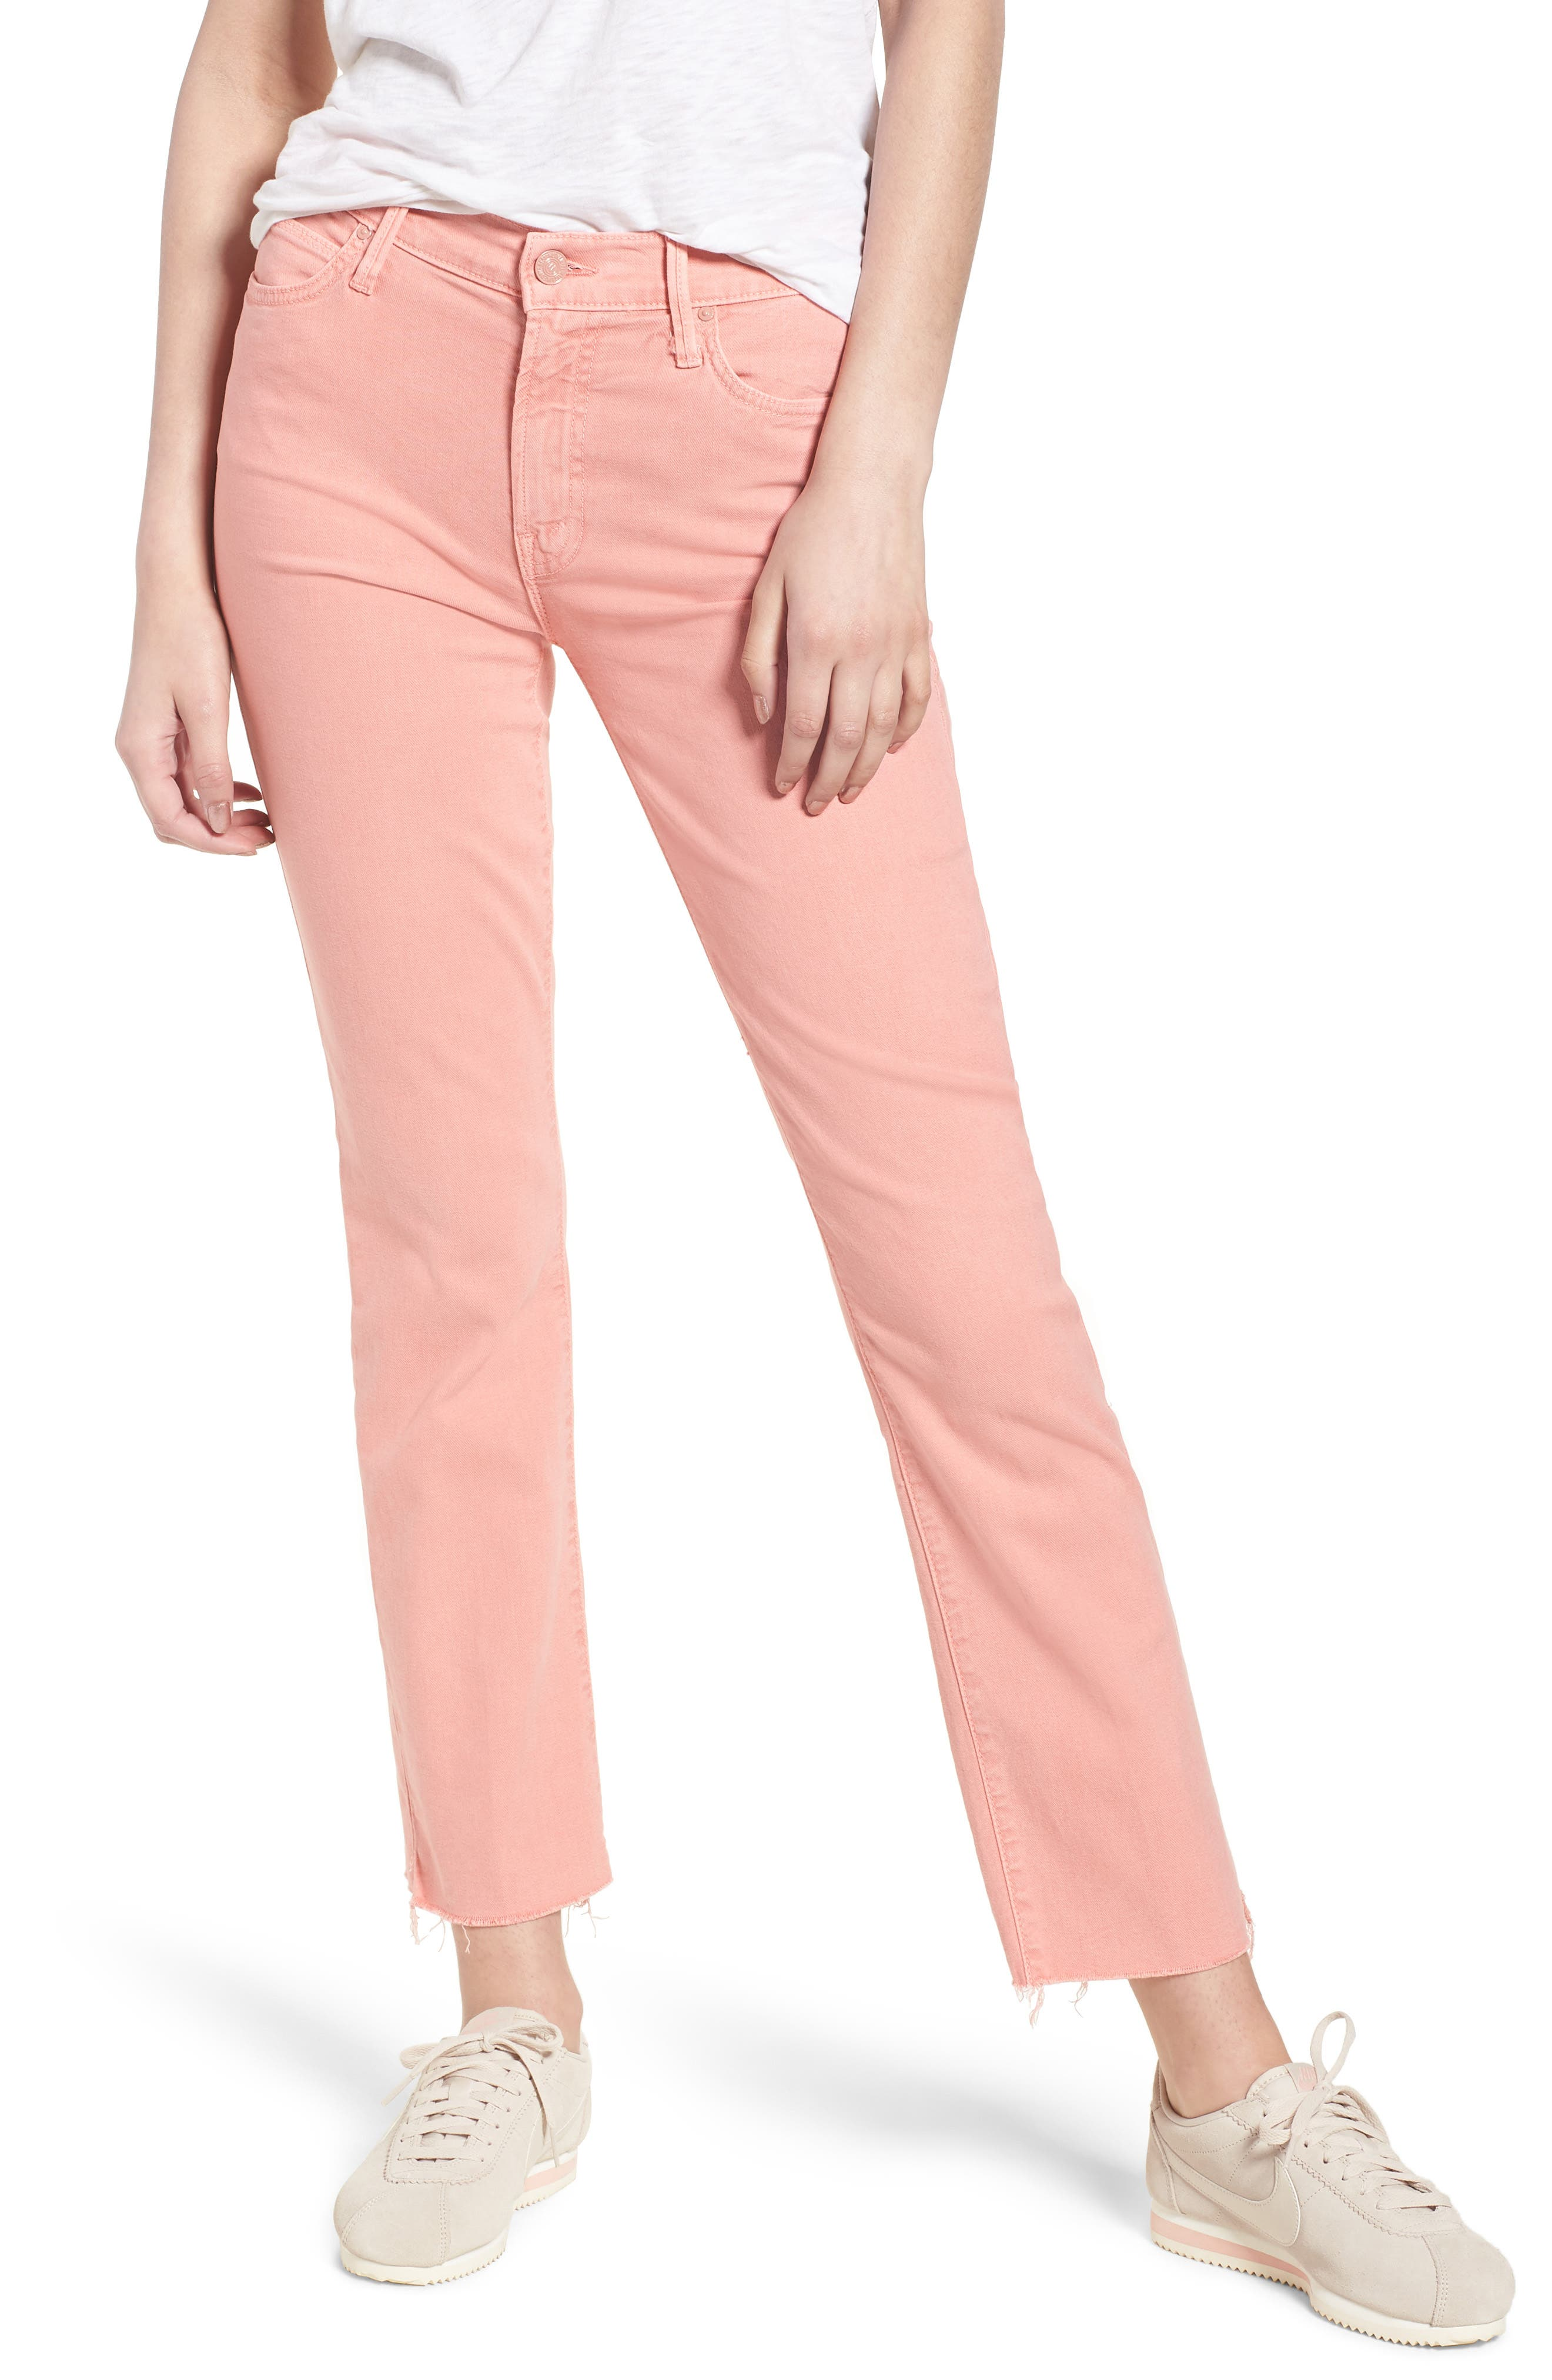 The Rascal Ankle Snippet Jeans,                             Main thumbnail 1, color,                             Dusty Pink